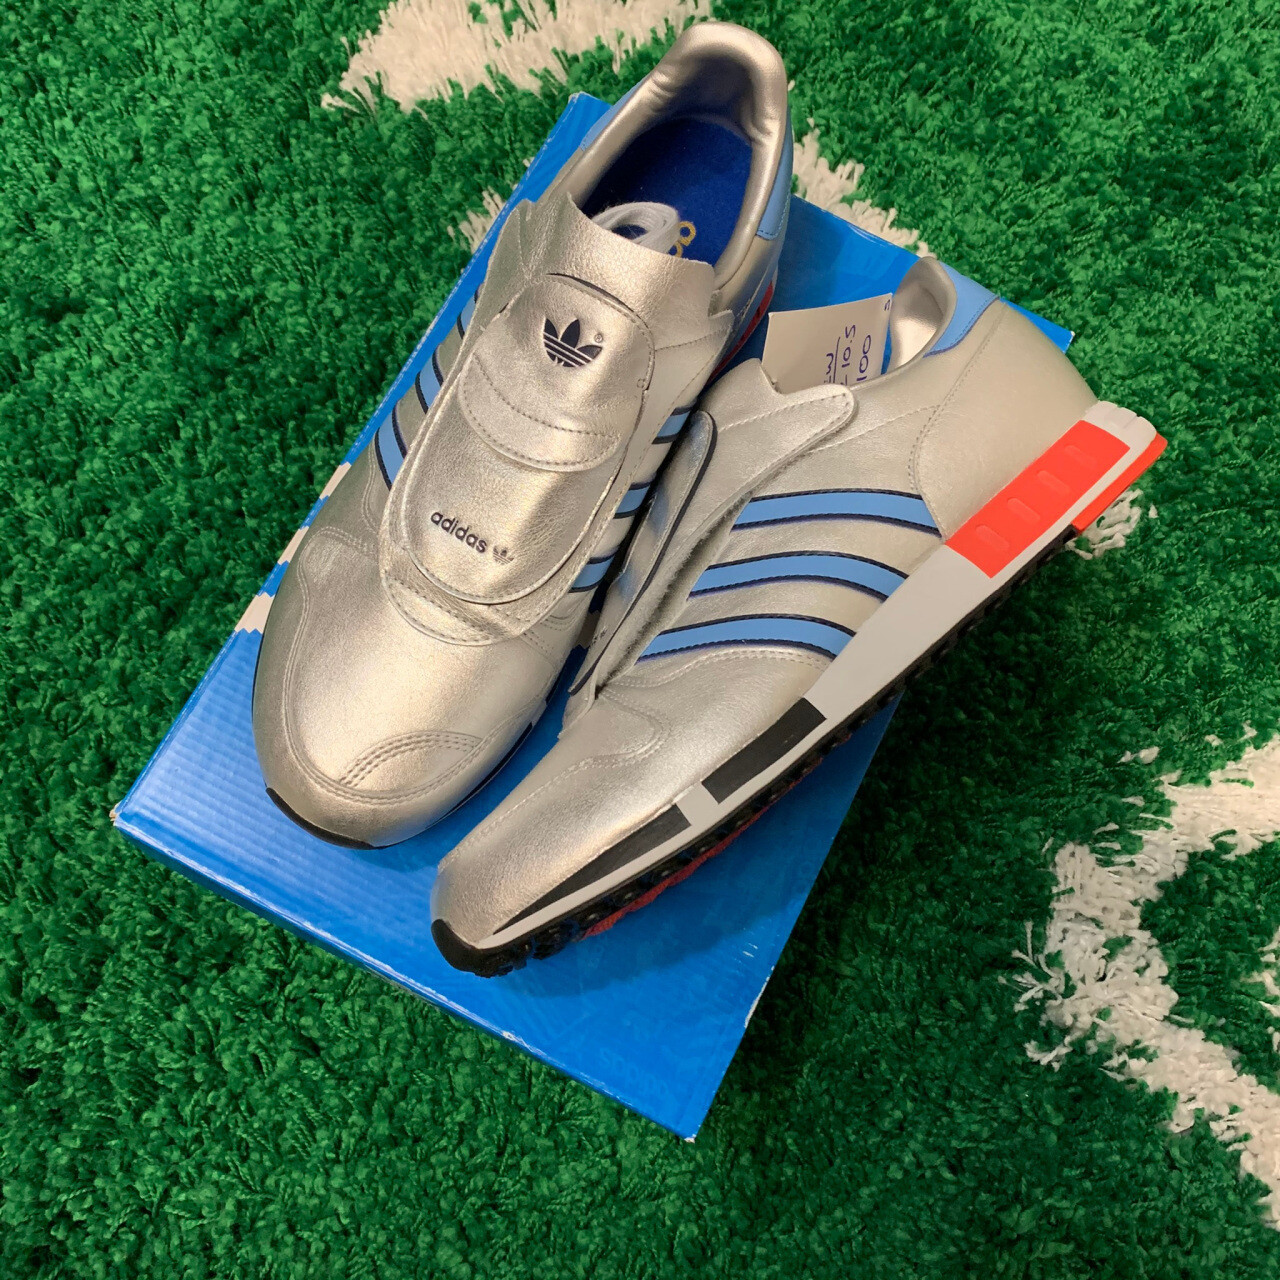 Adidas Micropacer OG 2014 Size 10.5